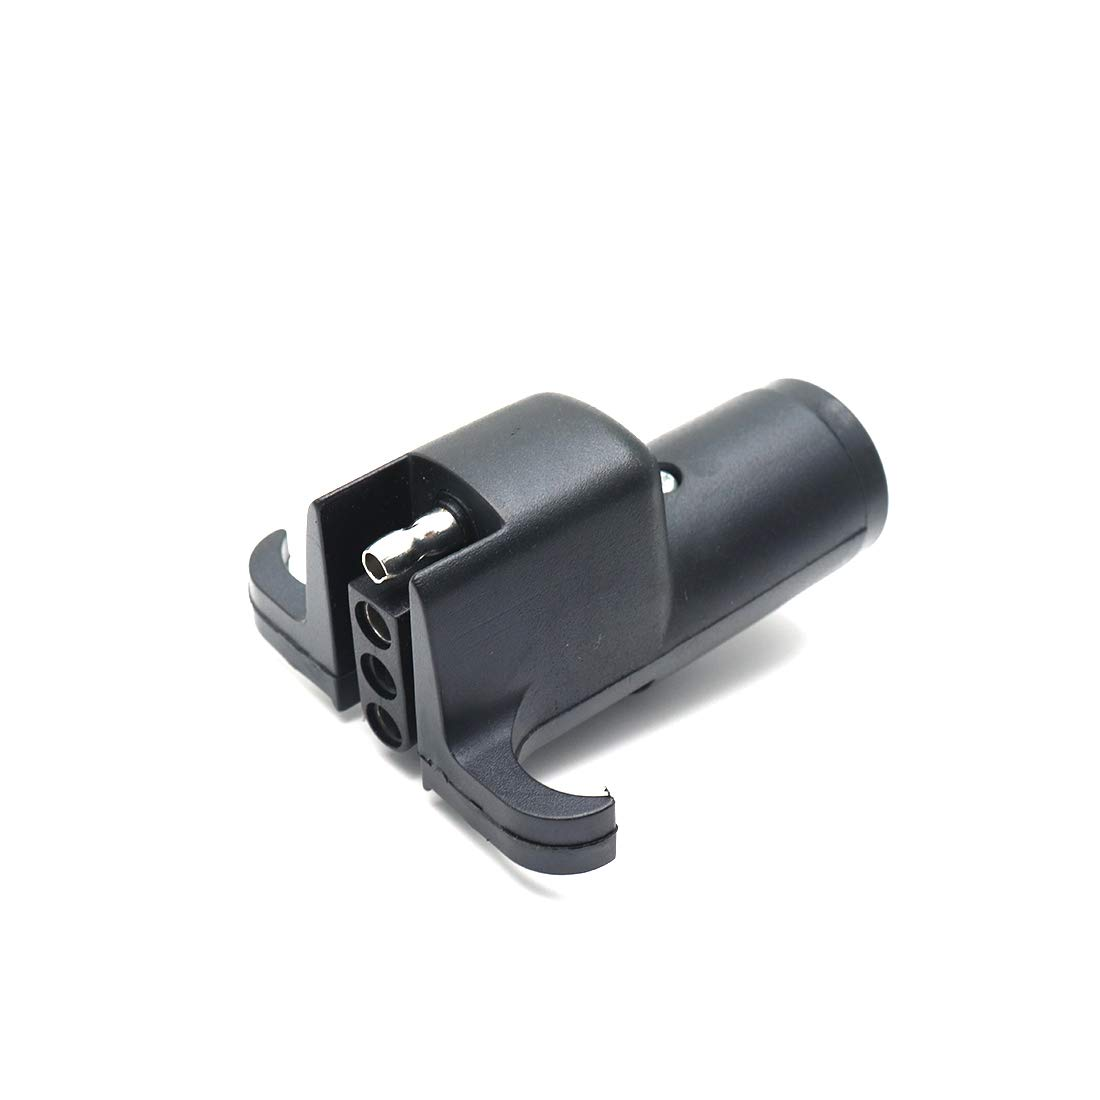 Autoly TM8007 American Seven-core Trailer Connector Trailer Plug Socket 7 core to 4 core